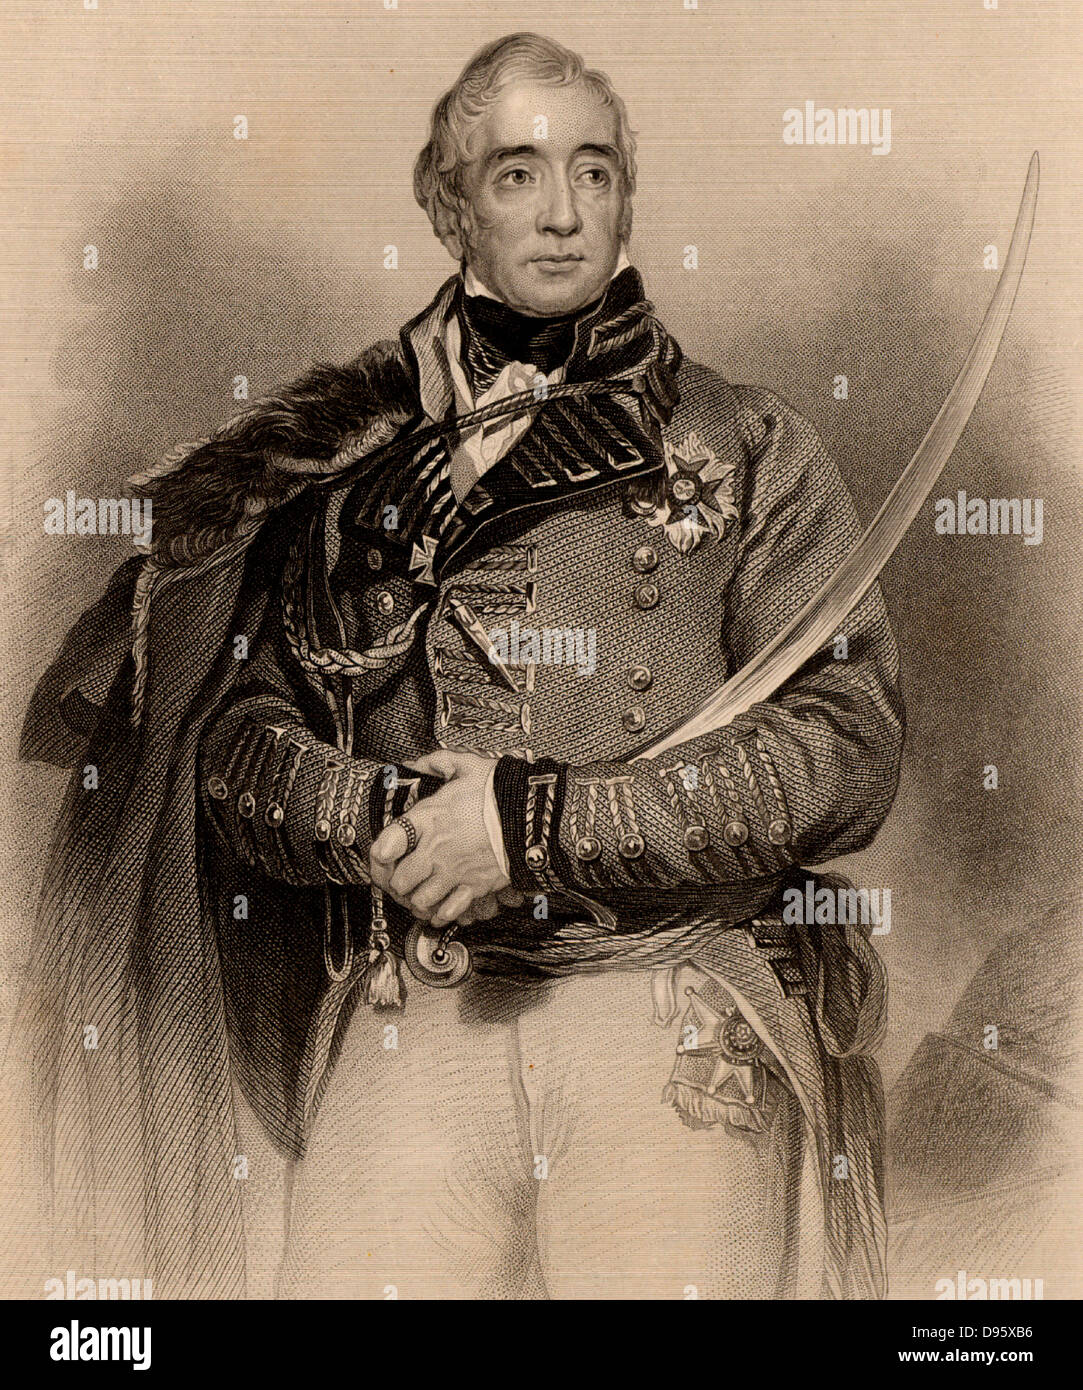 Thomas Graham, Baron Lynedoch (1750-1843) Scottish general who fought in  the Napoleonic Wars. He served under Sir - Stock Image